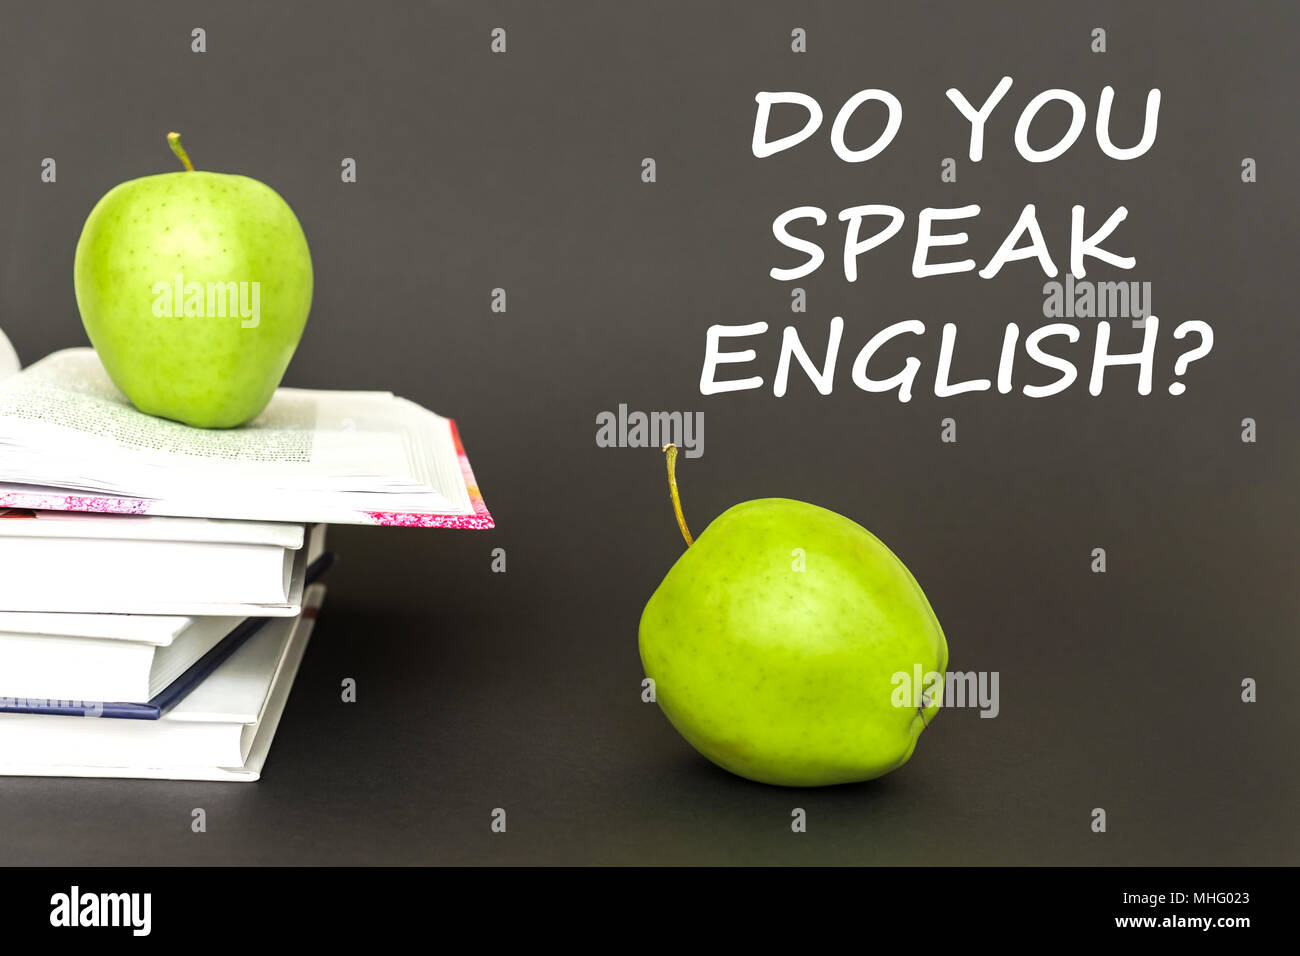 concept back to school, text do you speak english, two green apples, open books on gray background - Stock Image